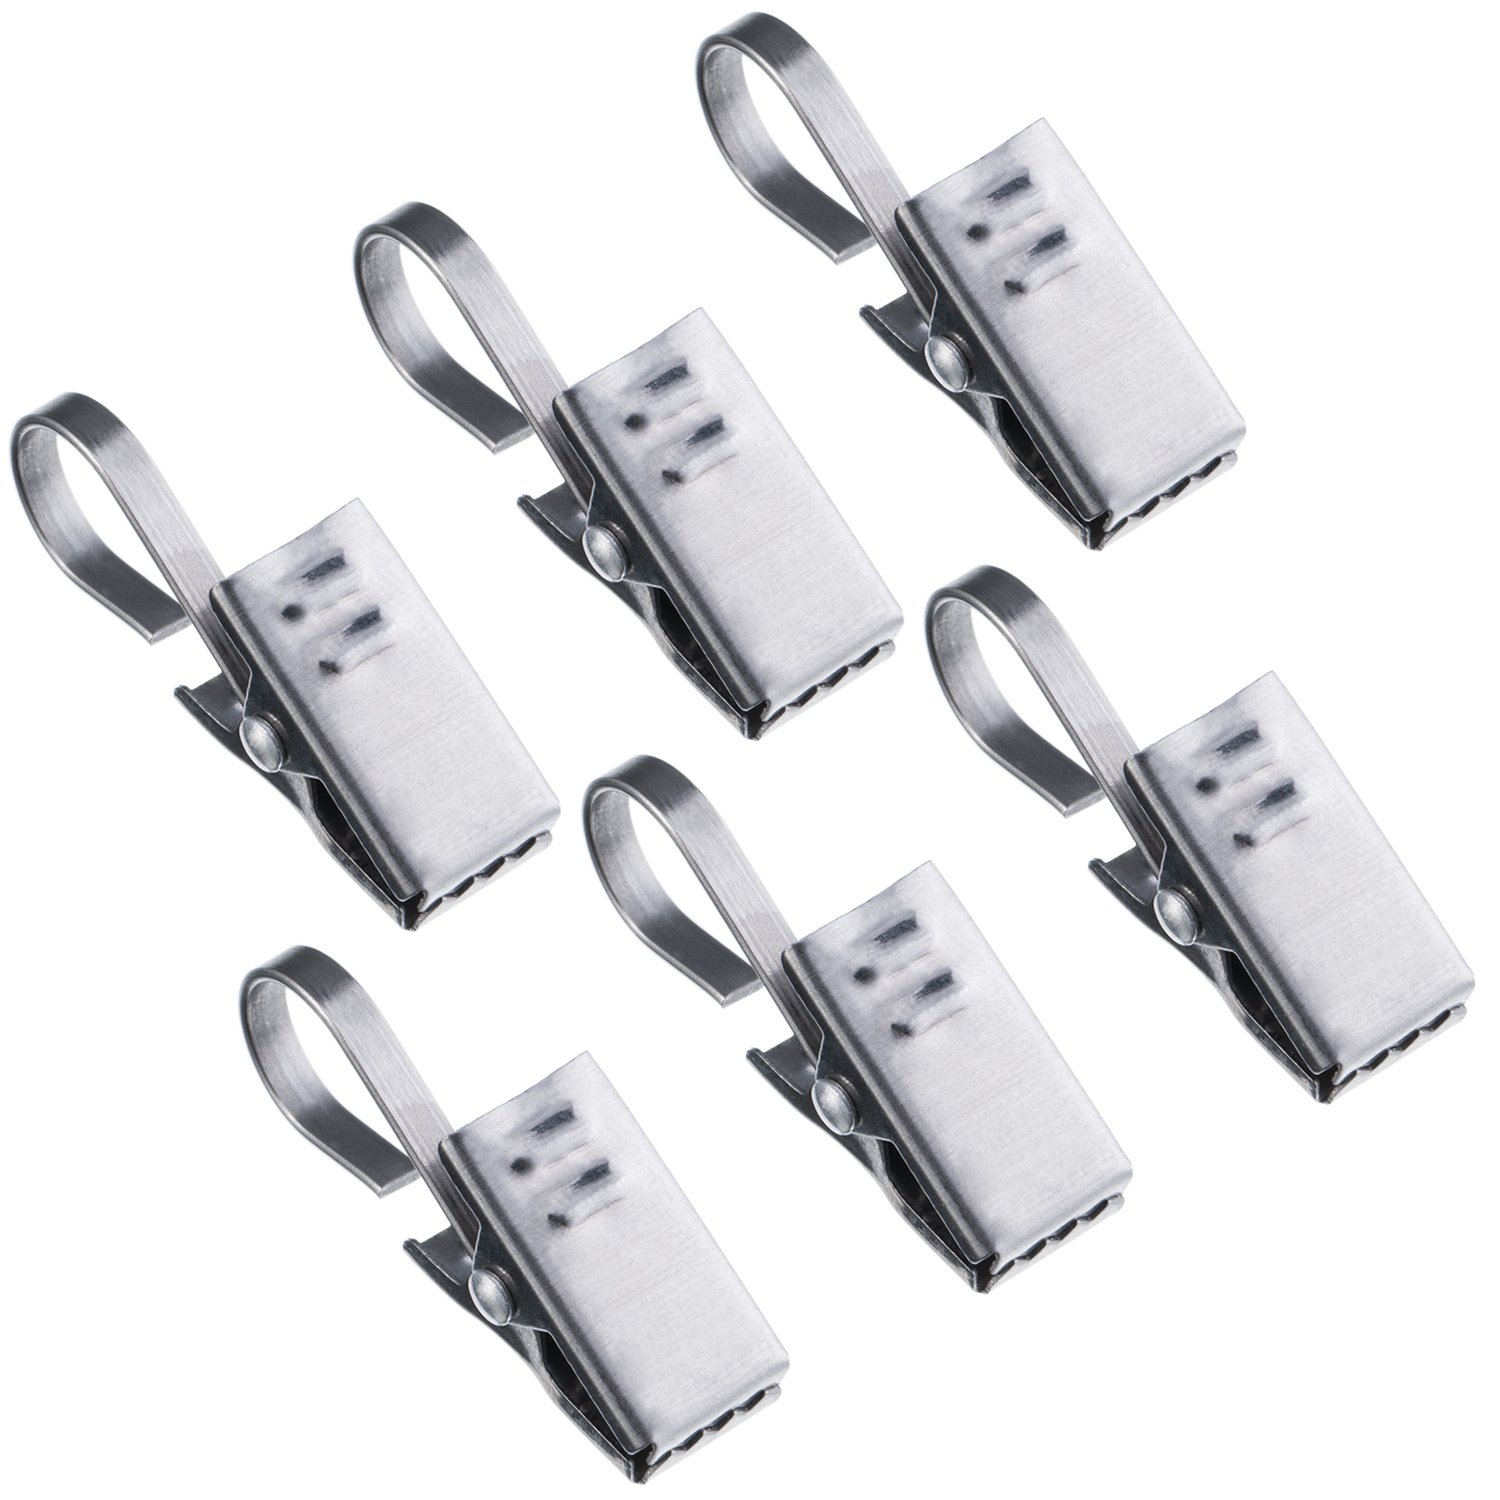 TecUnite 50 Pack Stainless Steel Clips Curtain Hooks Photo Clips for Party Home Decoration